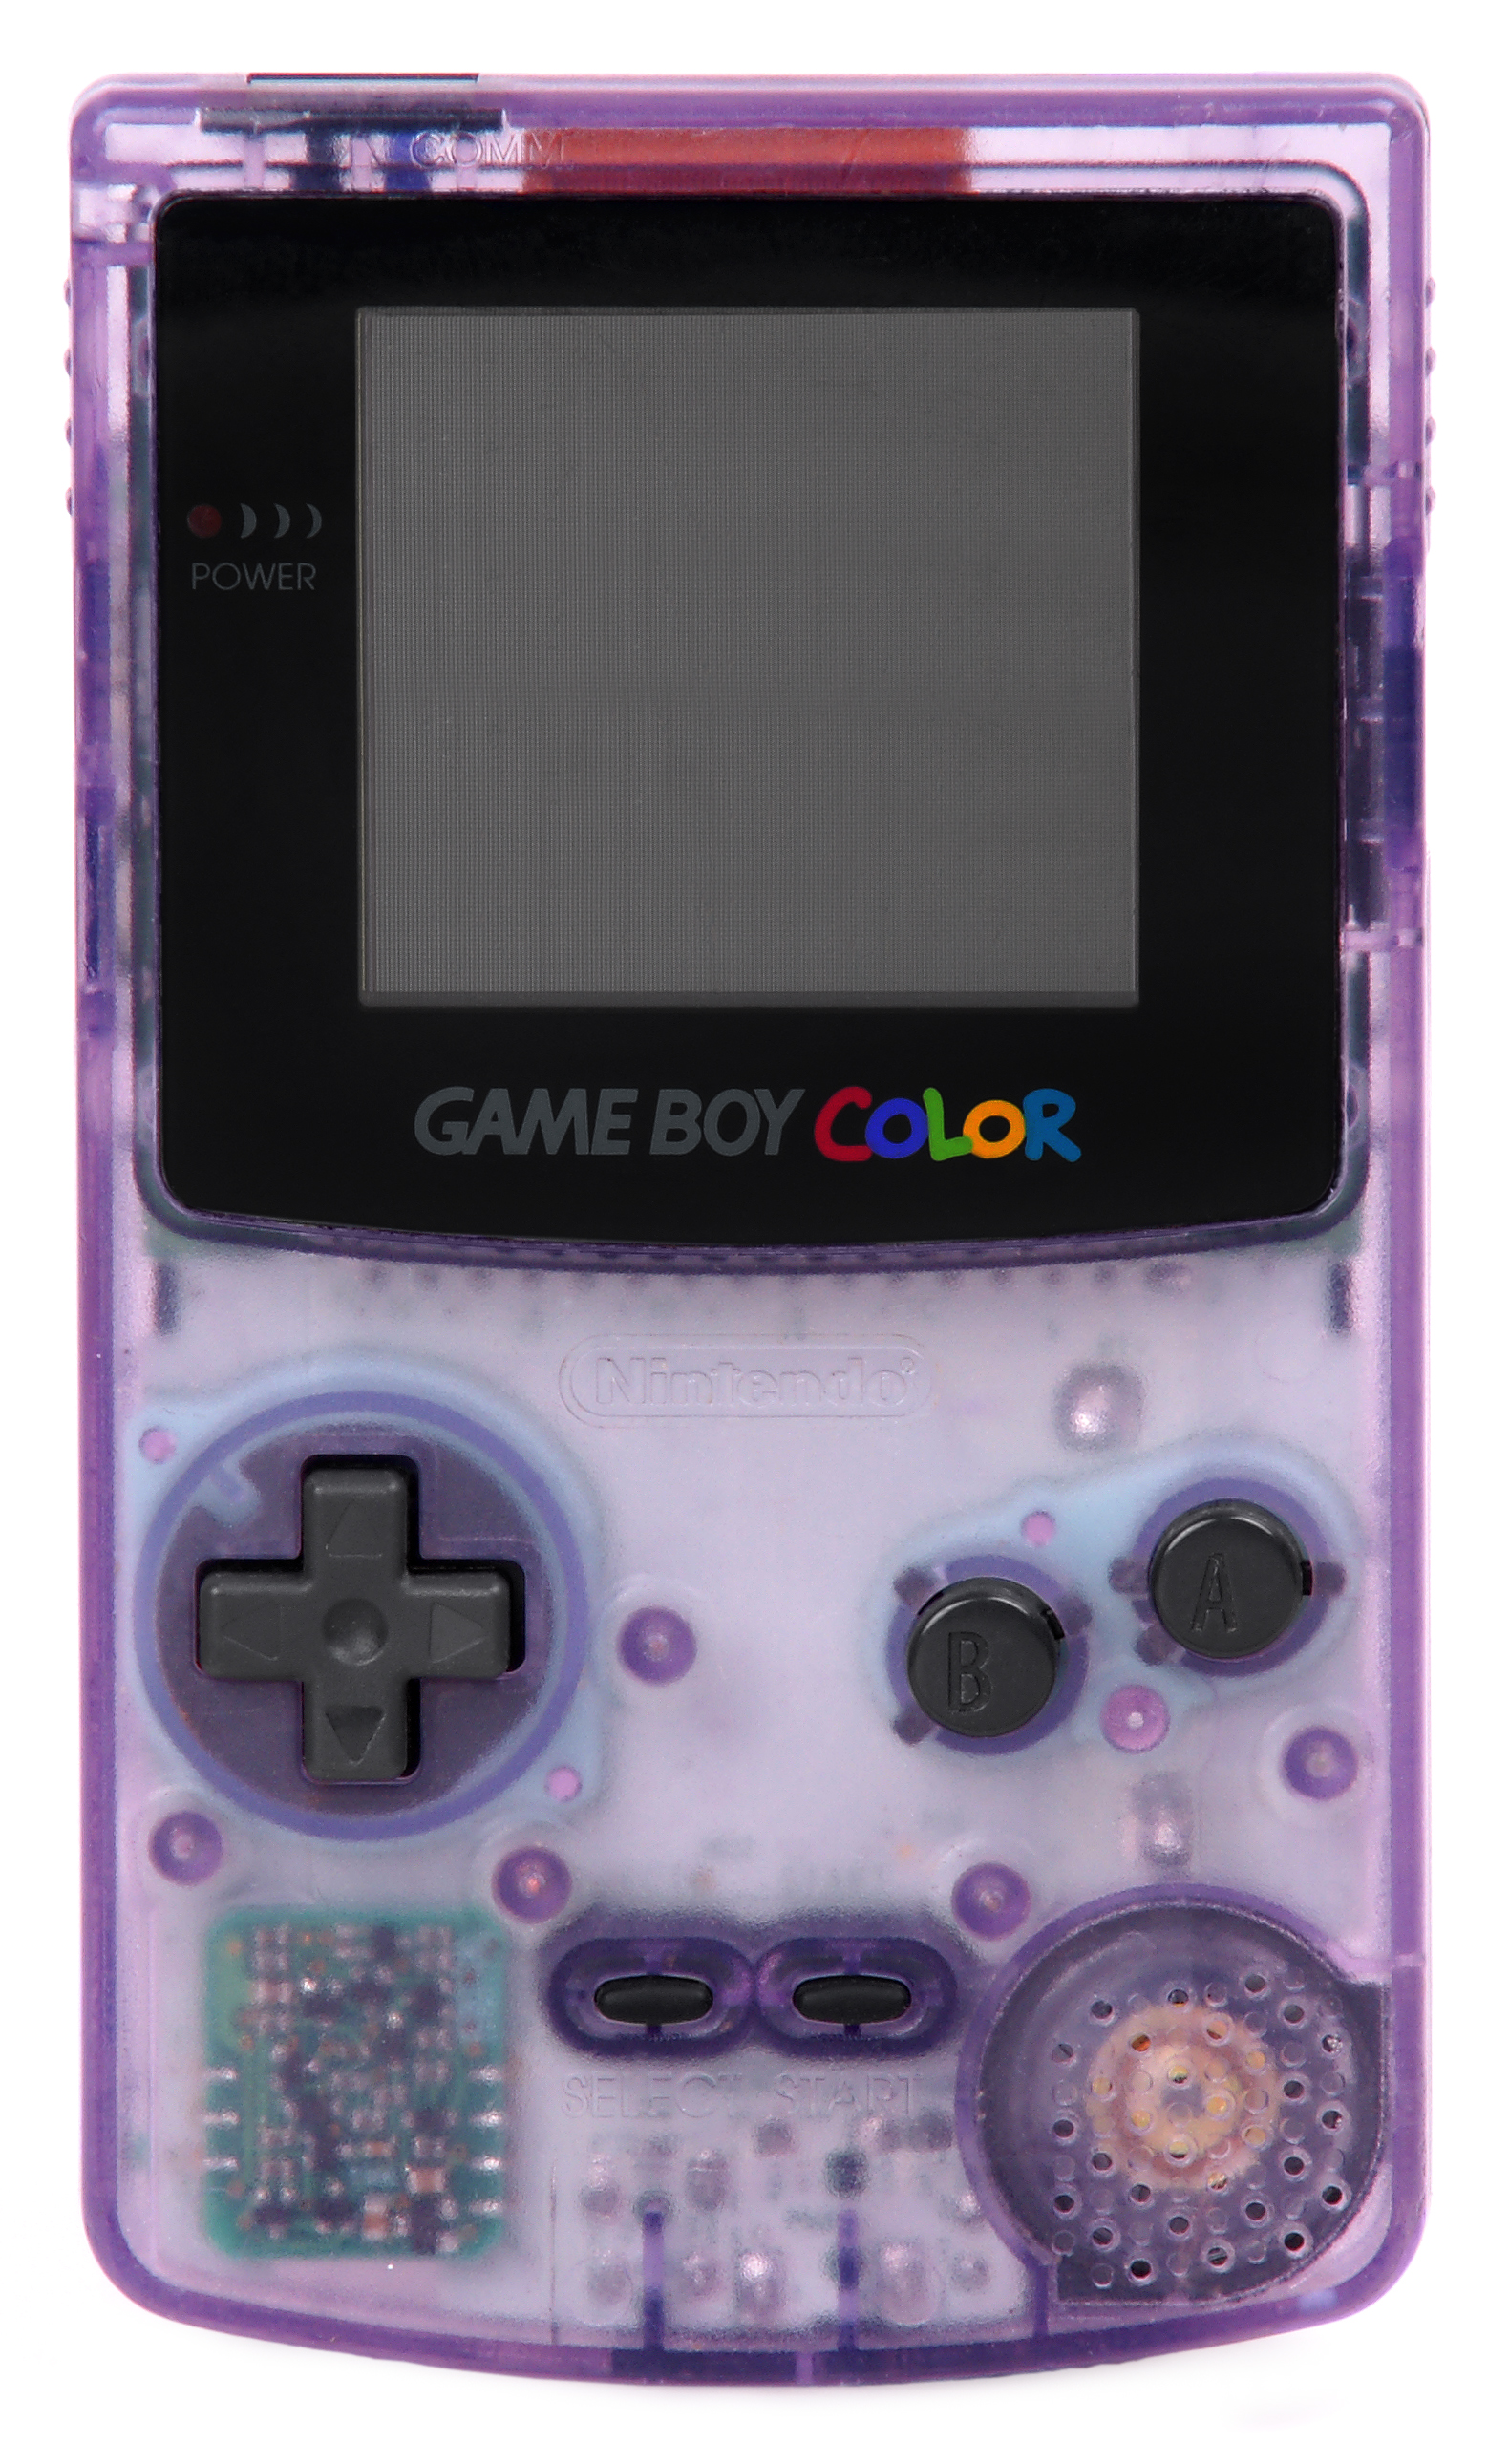 file game boy color purple jpg wikimedia commons